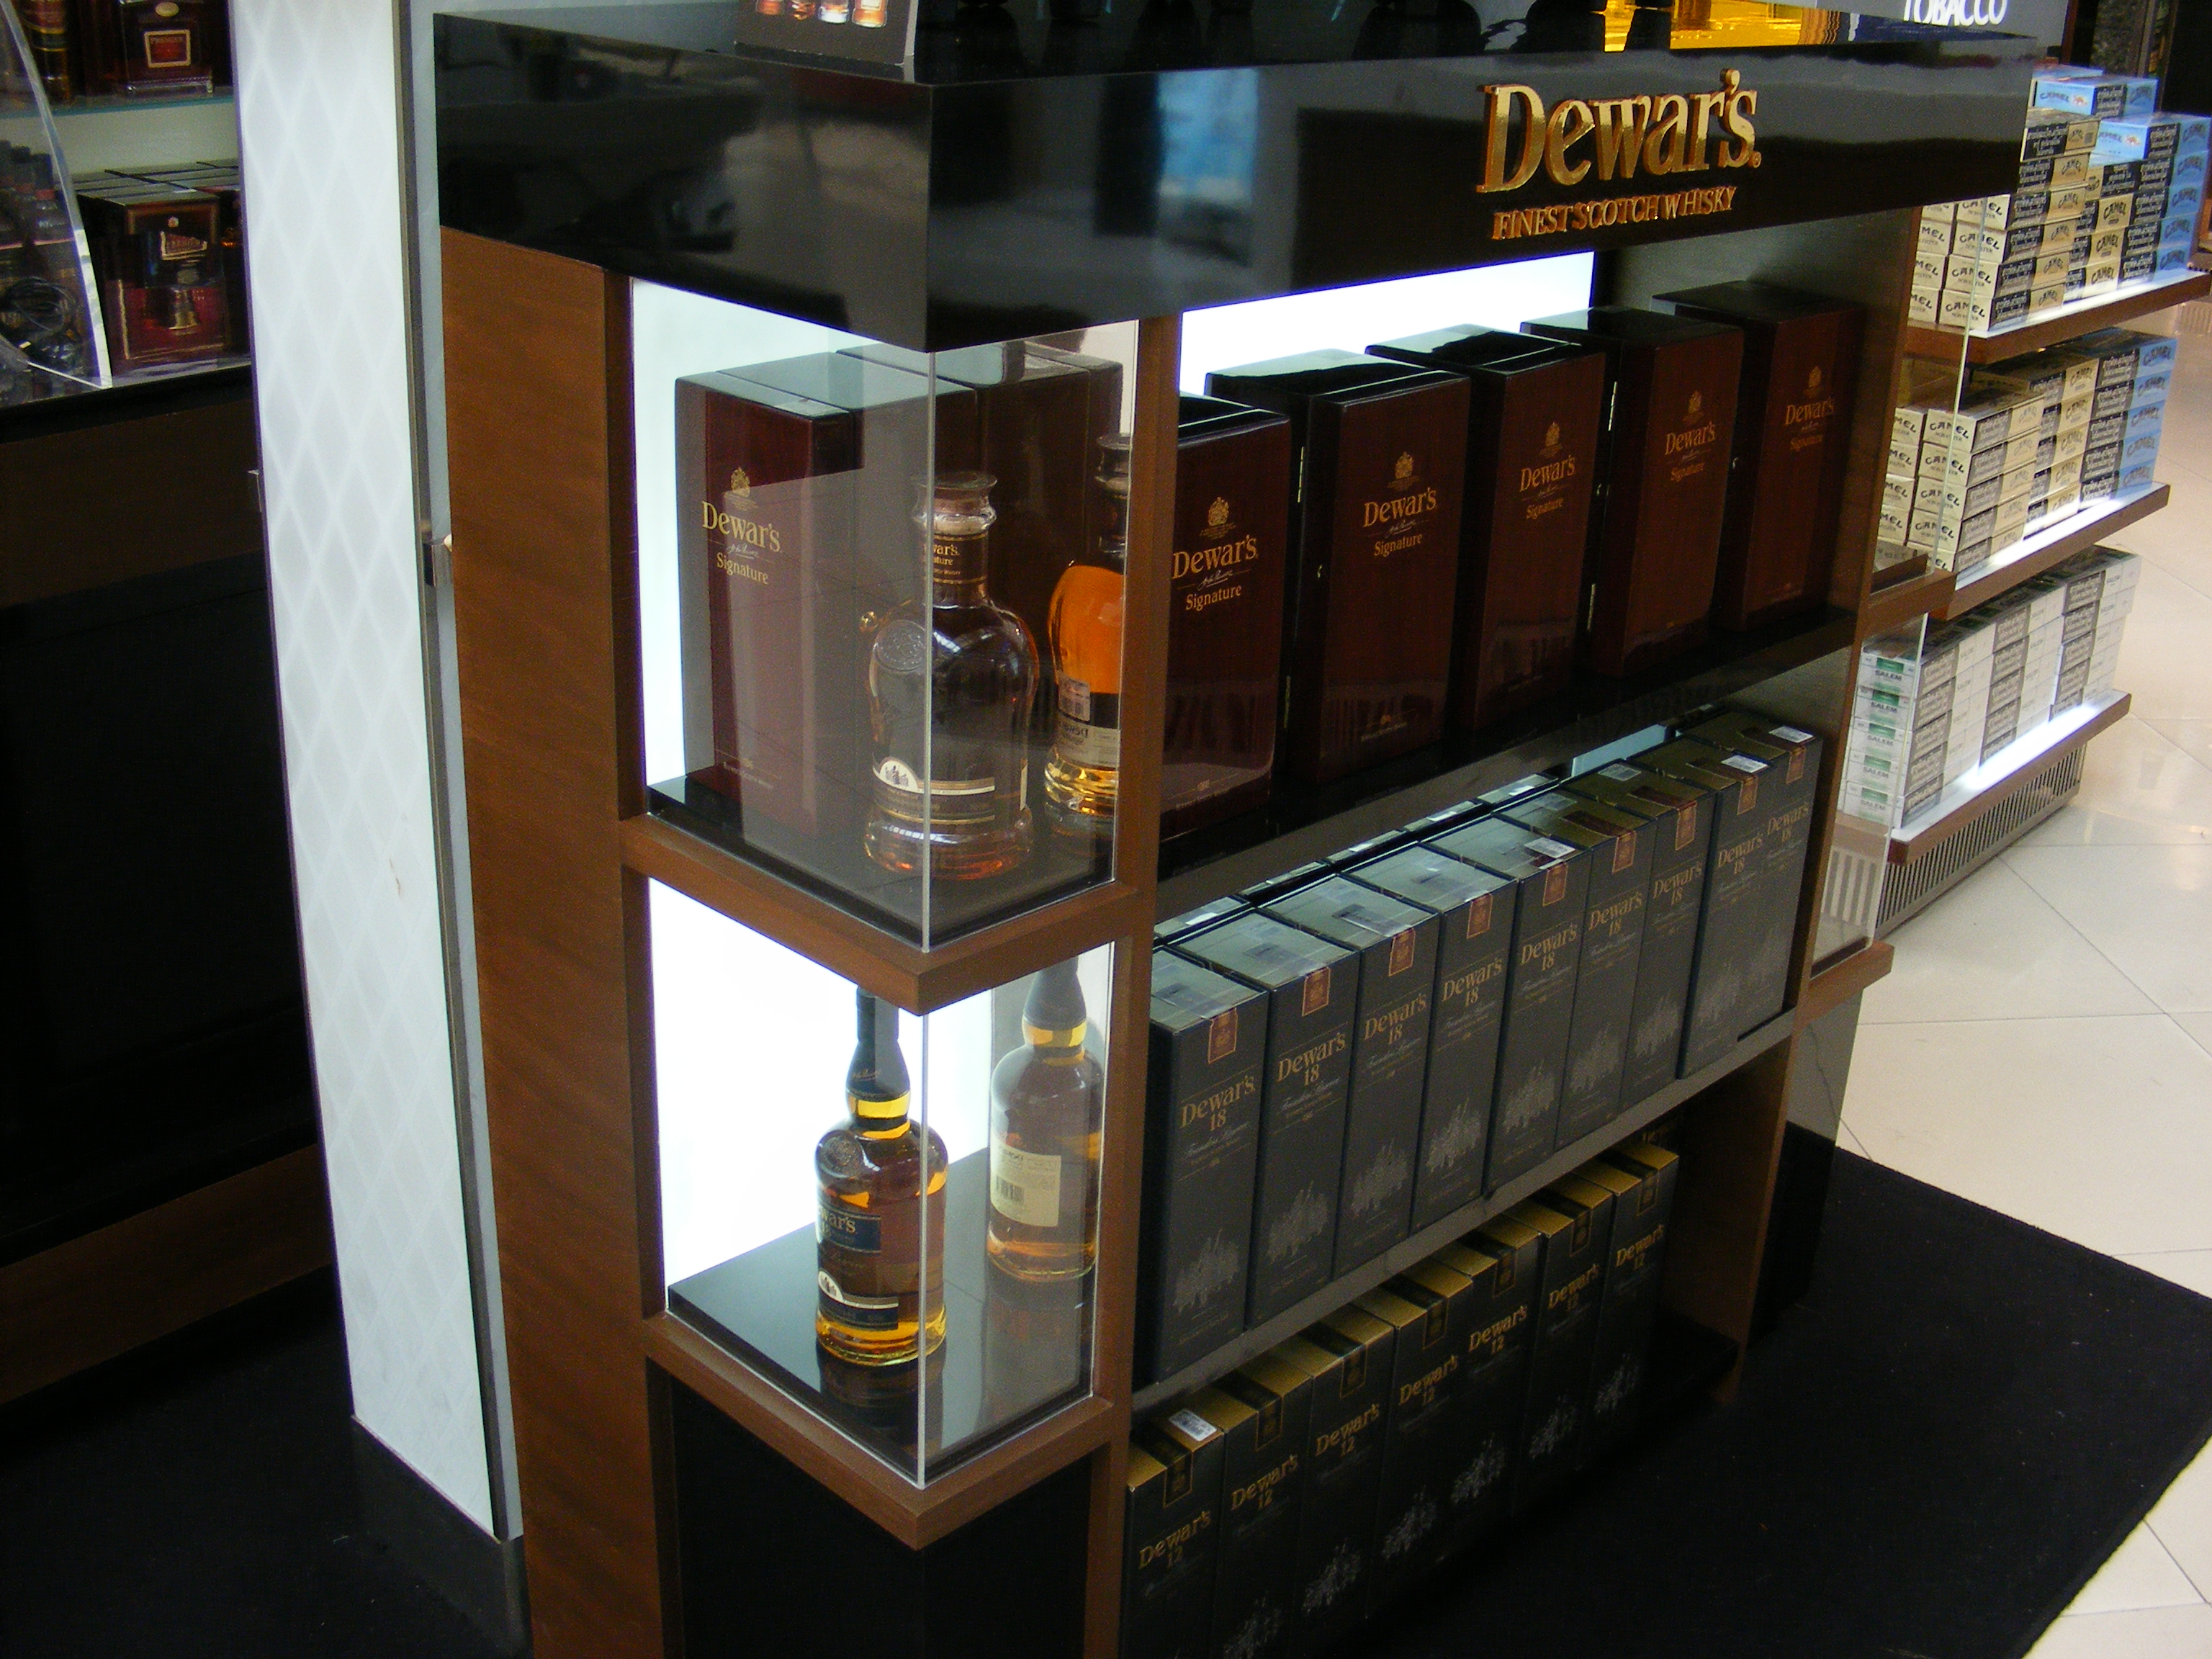 a repositioning of dewars brand Unlike most editing & proofreading services, we edit for everything: grammar, spelling, punctuation, idea flow, sentence structure, & more get started now.